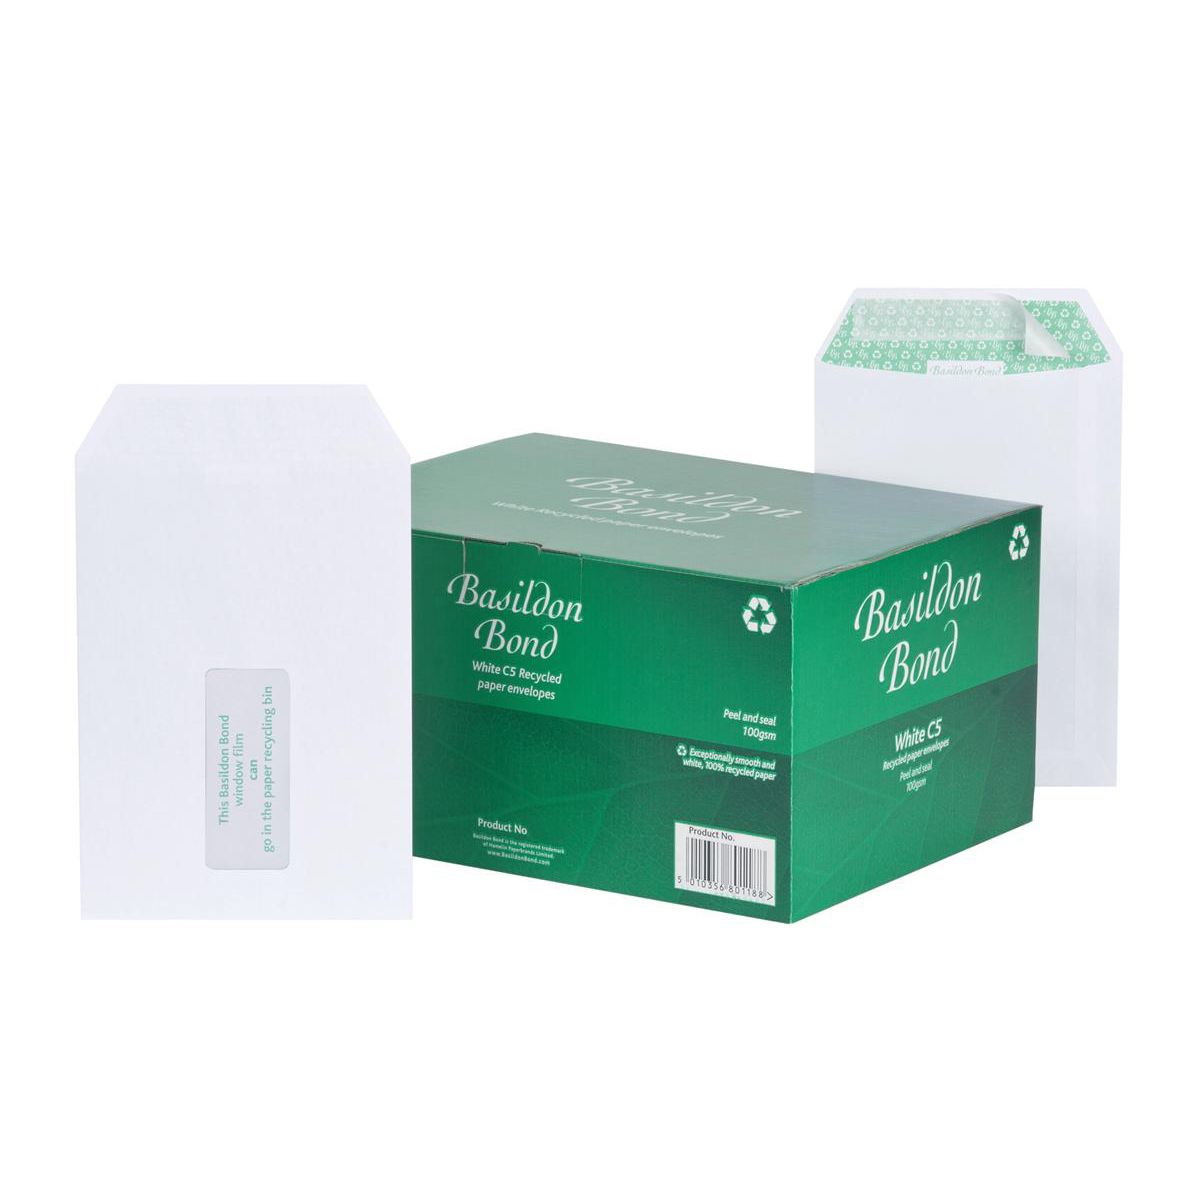 Basildon Bond Envelopes FSC Recycled Pocket P&S Window 120gsm C5 White Ref J80119 Pack 500 PRIZE DRAW